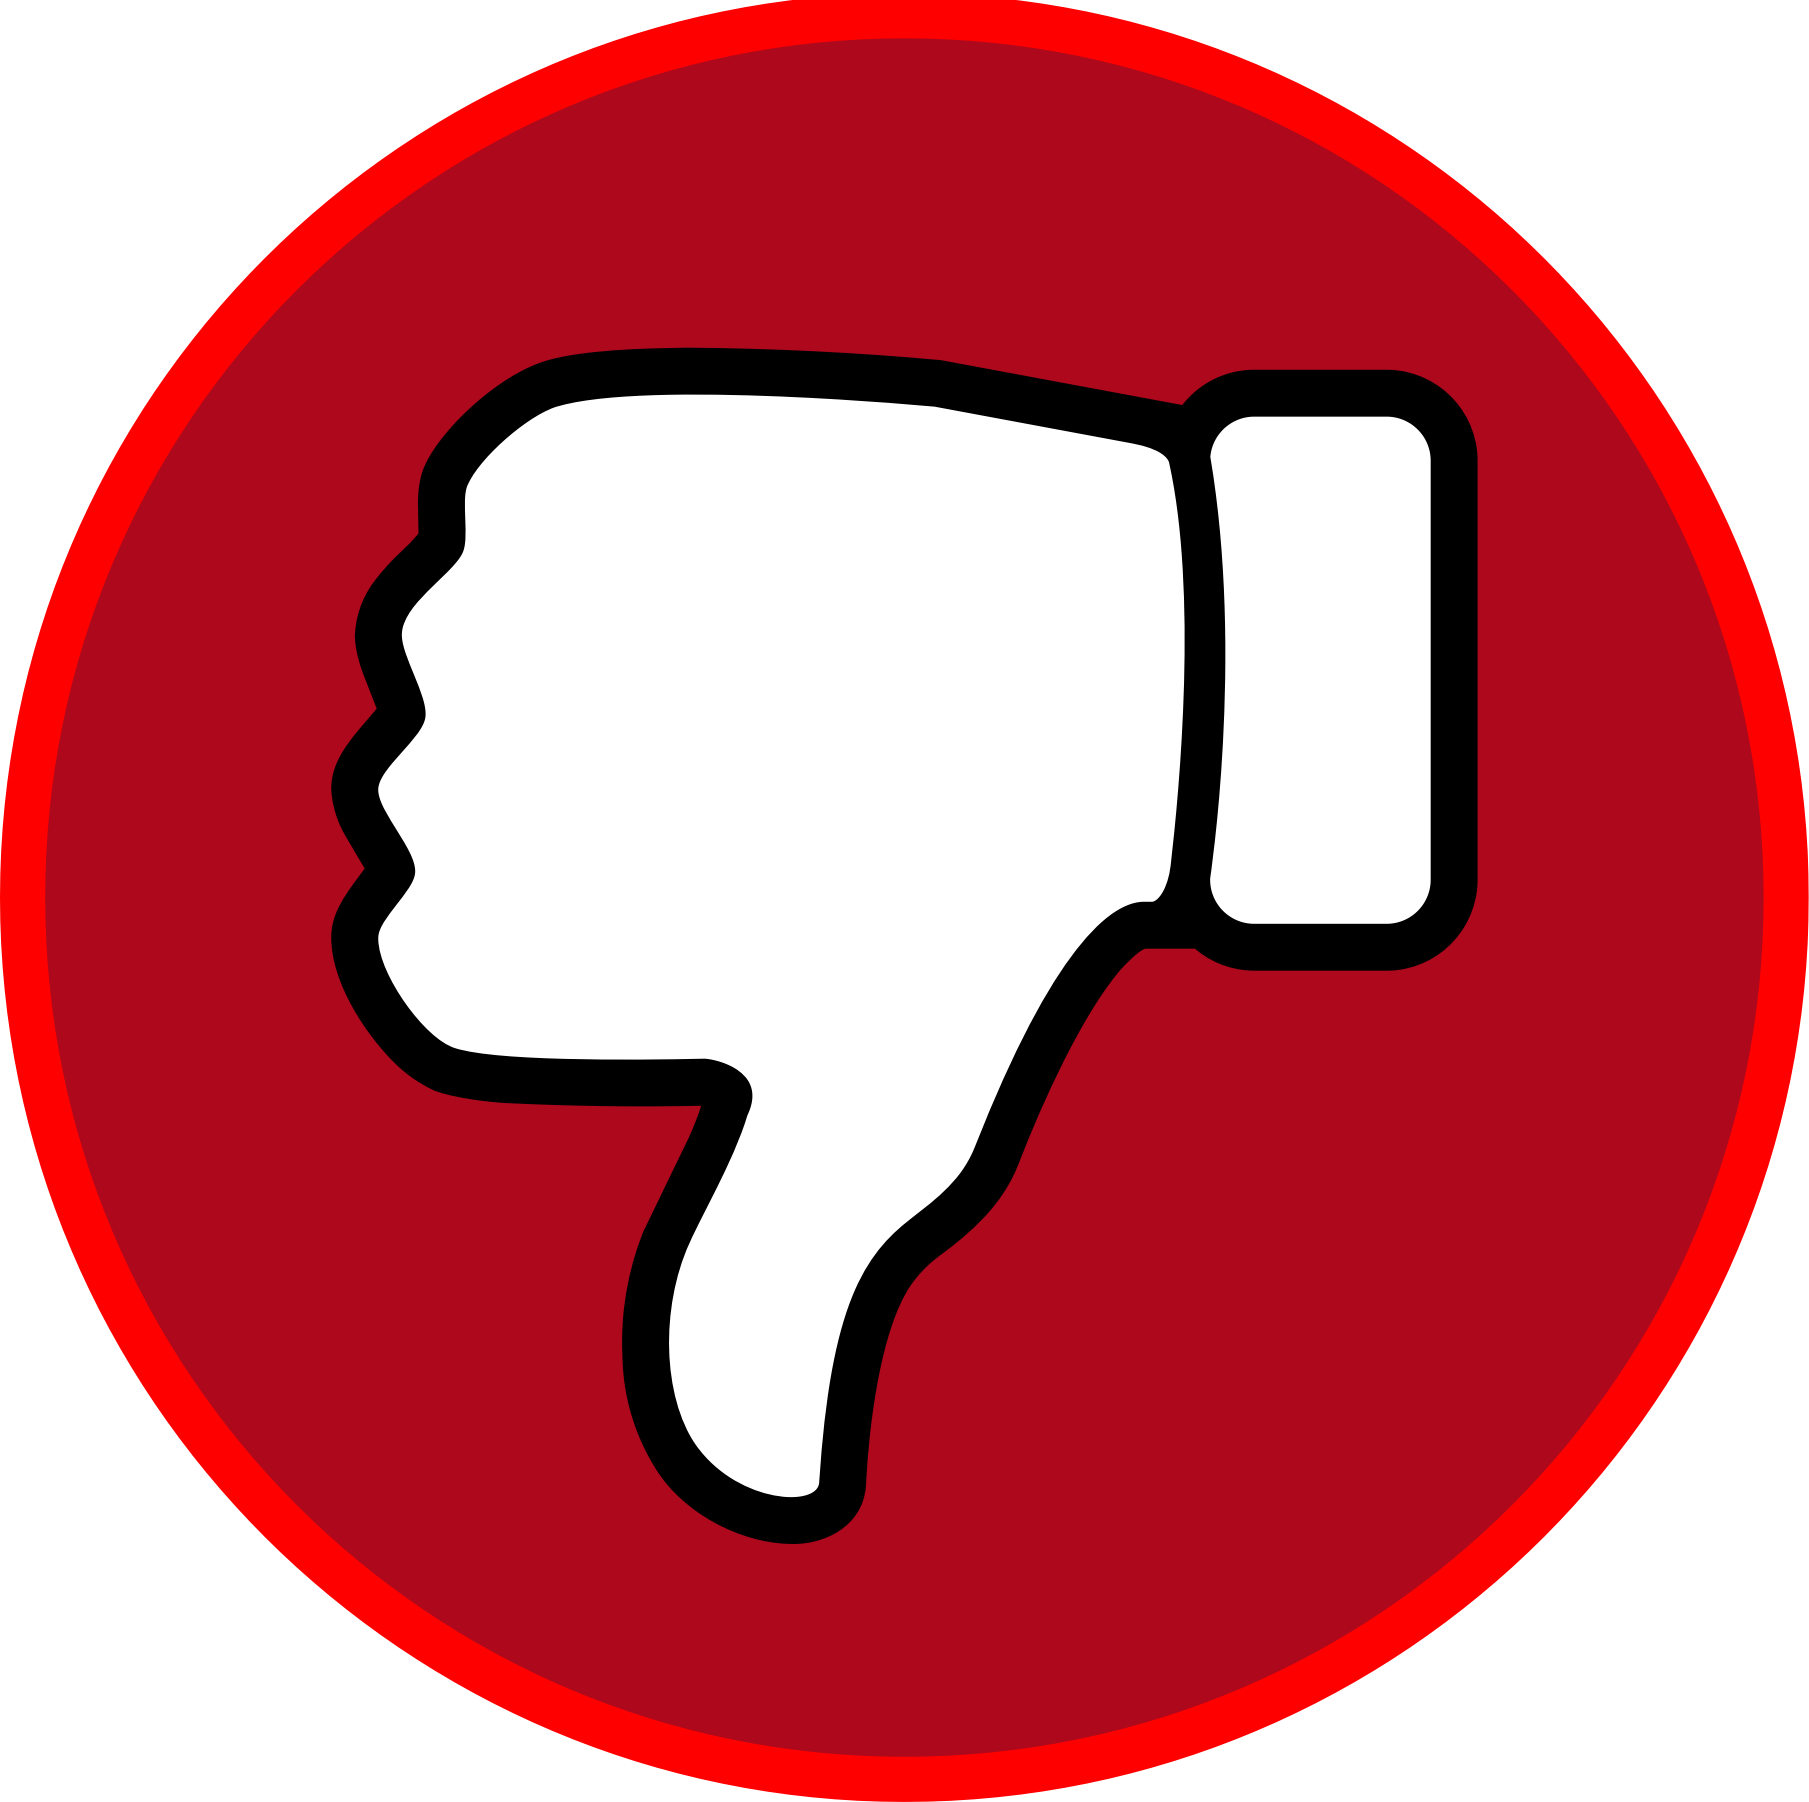 PNG Thumbs Down Transparent Thumbs Down.PNG Images..